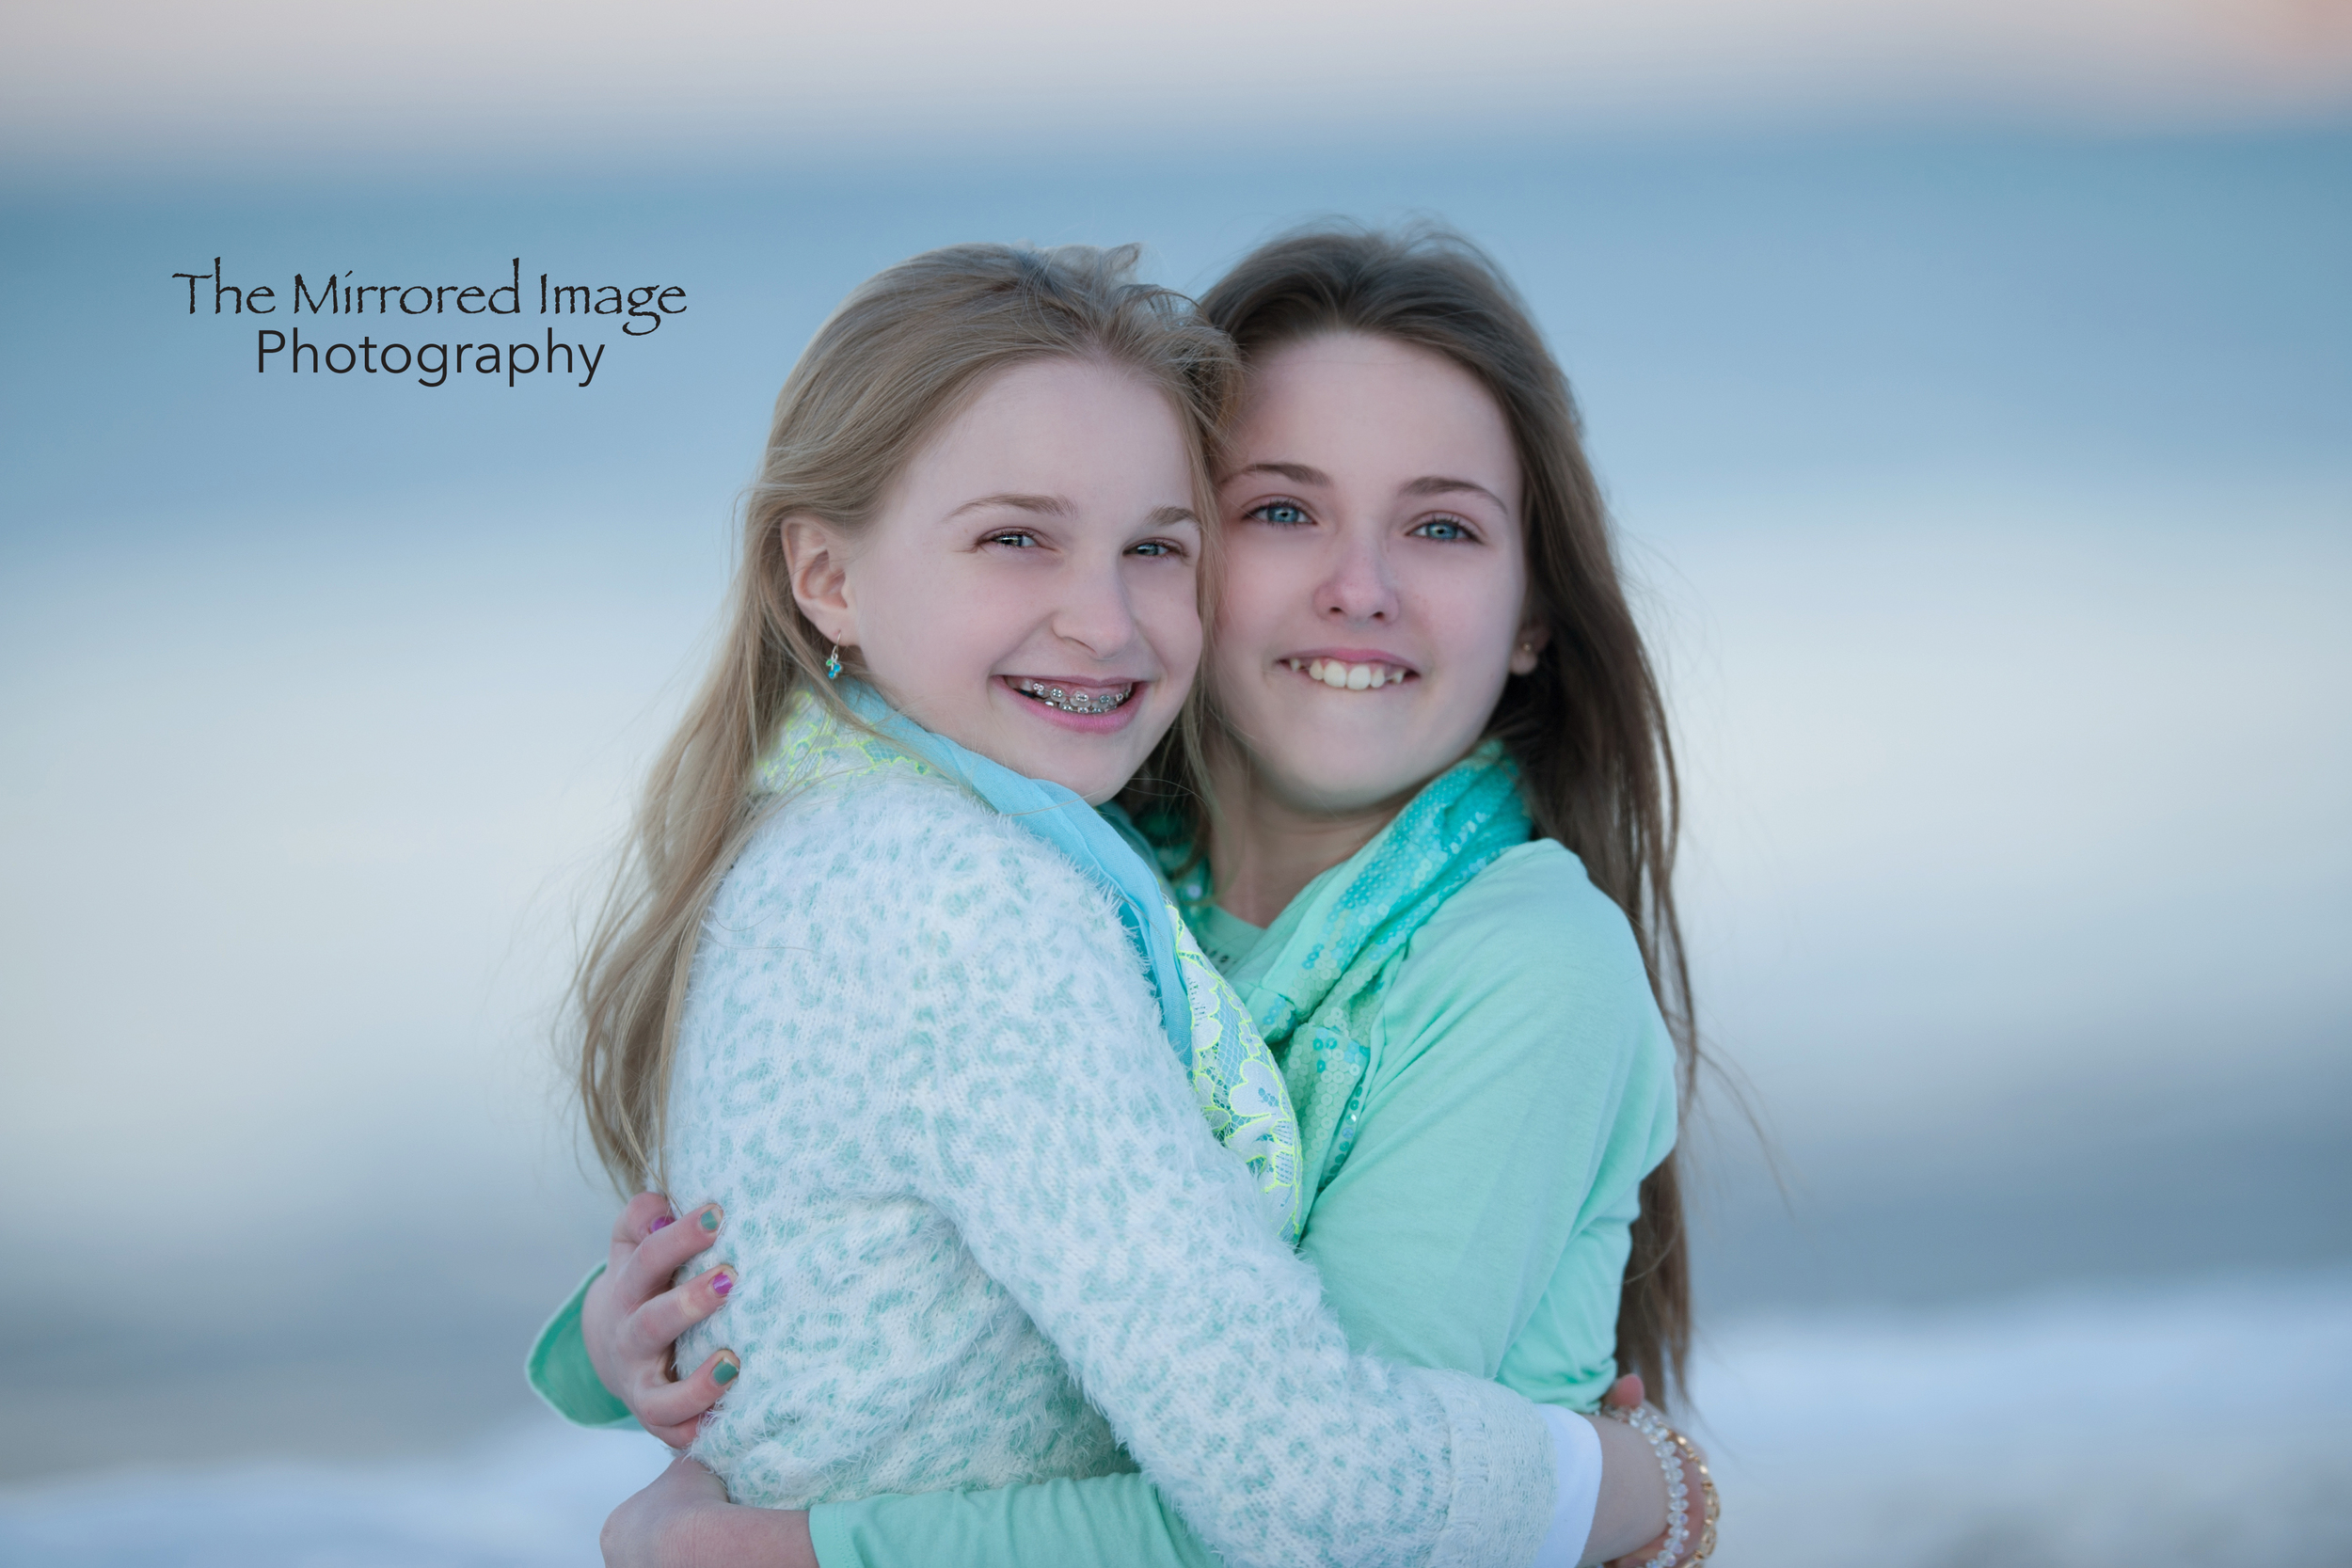 Children's Fine Art Photography, Fine Art Photography, Tween Portraits